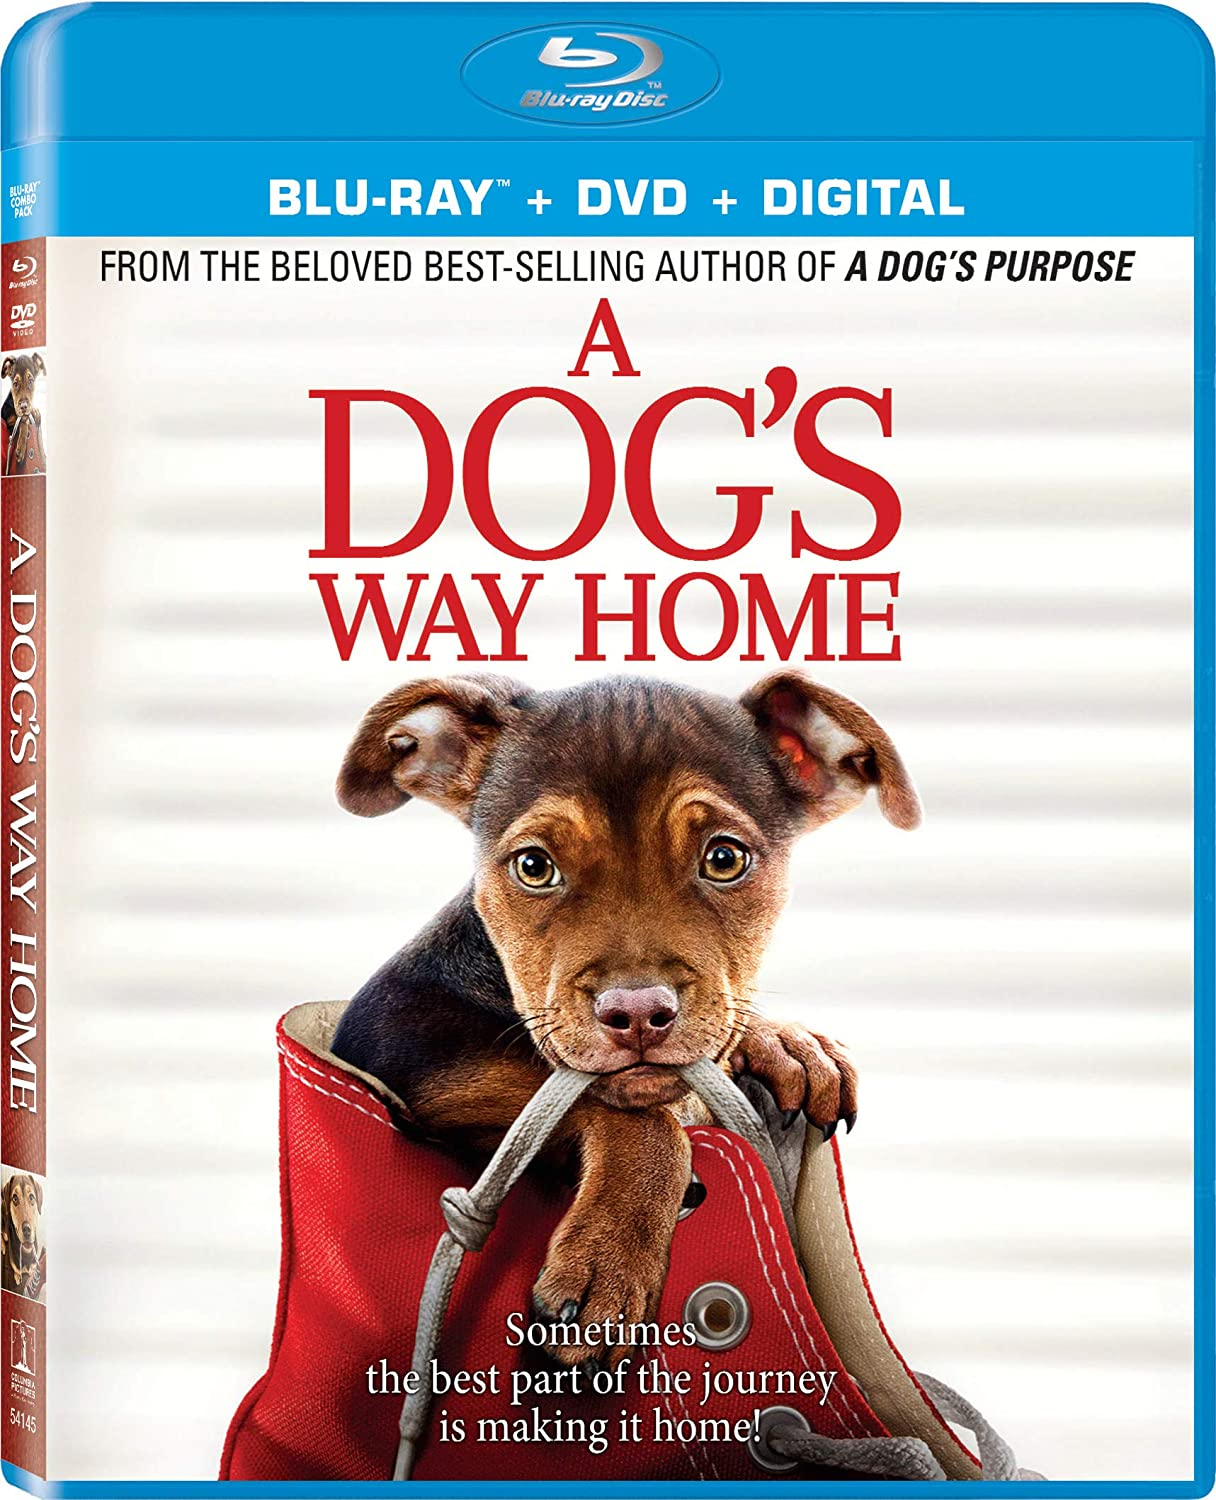 A Dog's Way Home [Blu-ray]